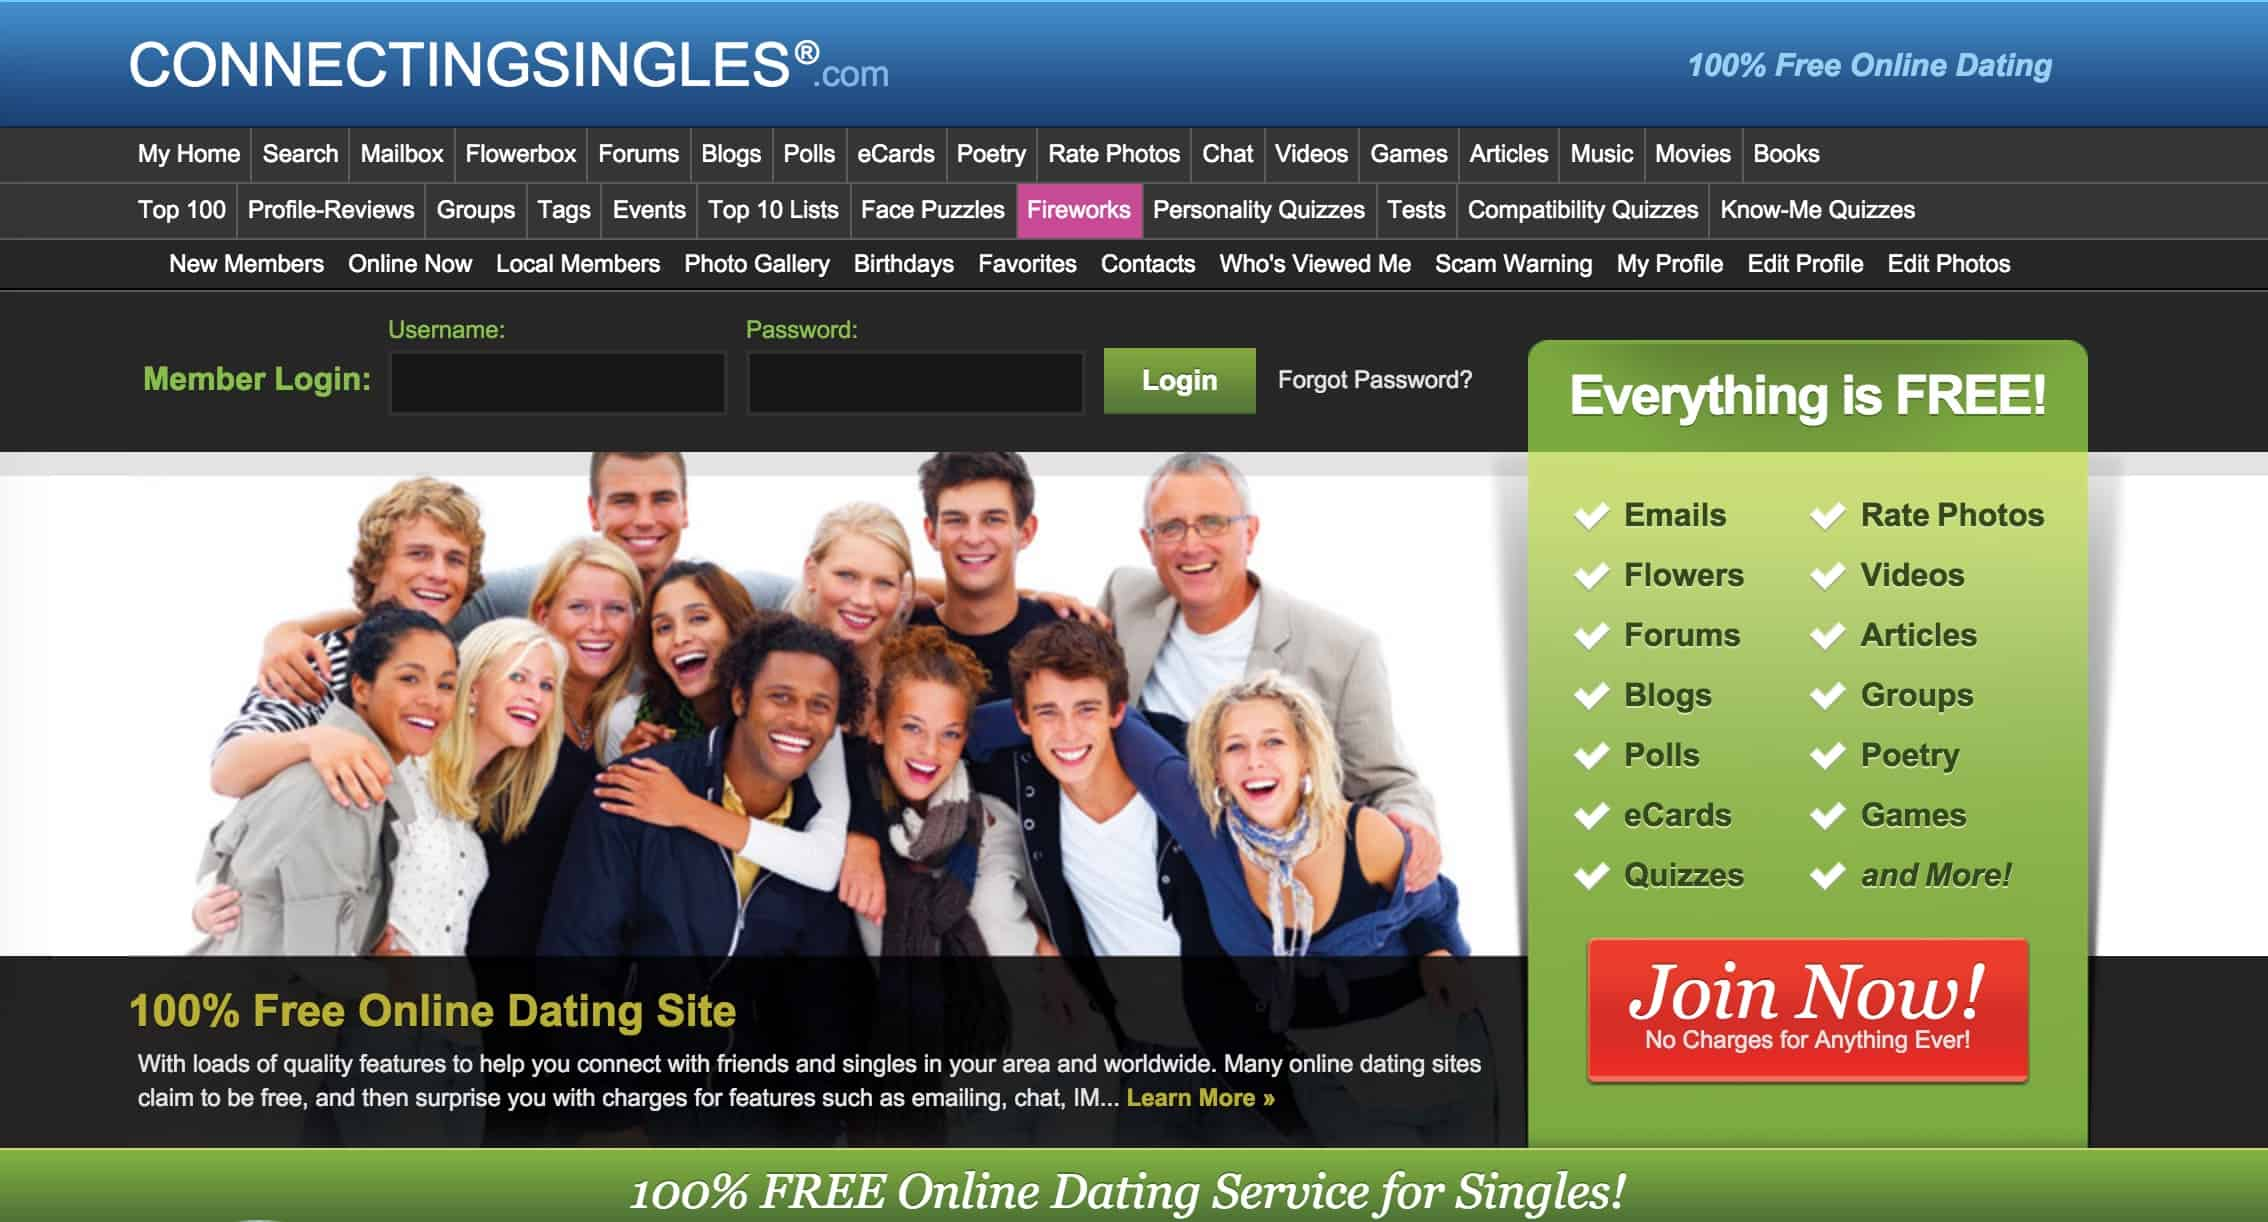 100% free online dating in shutesbury 100% totally free online dating in america, absolutely free american dating service.